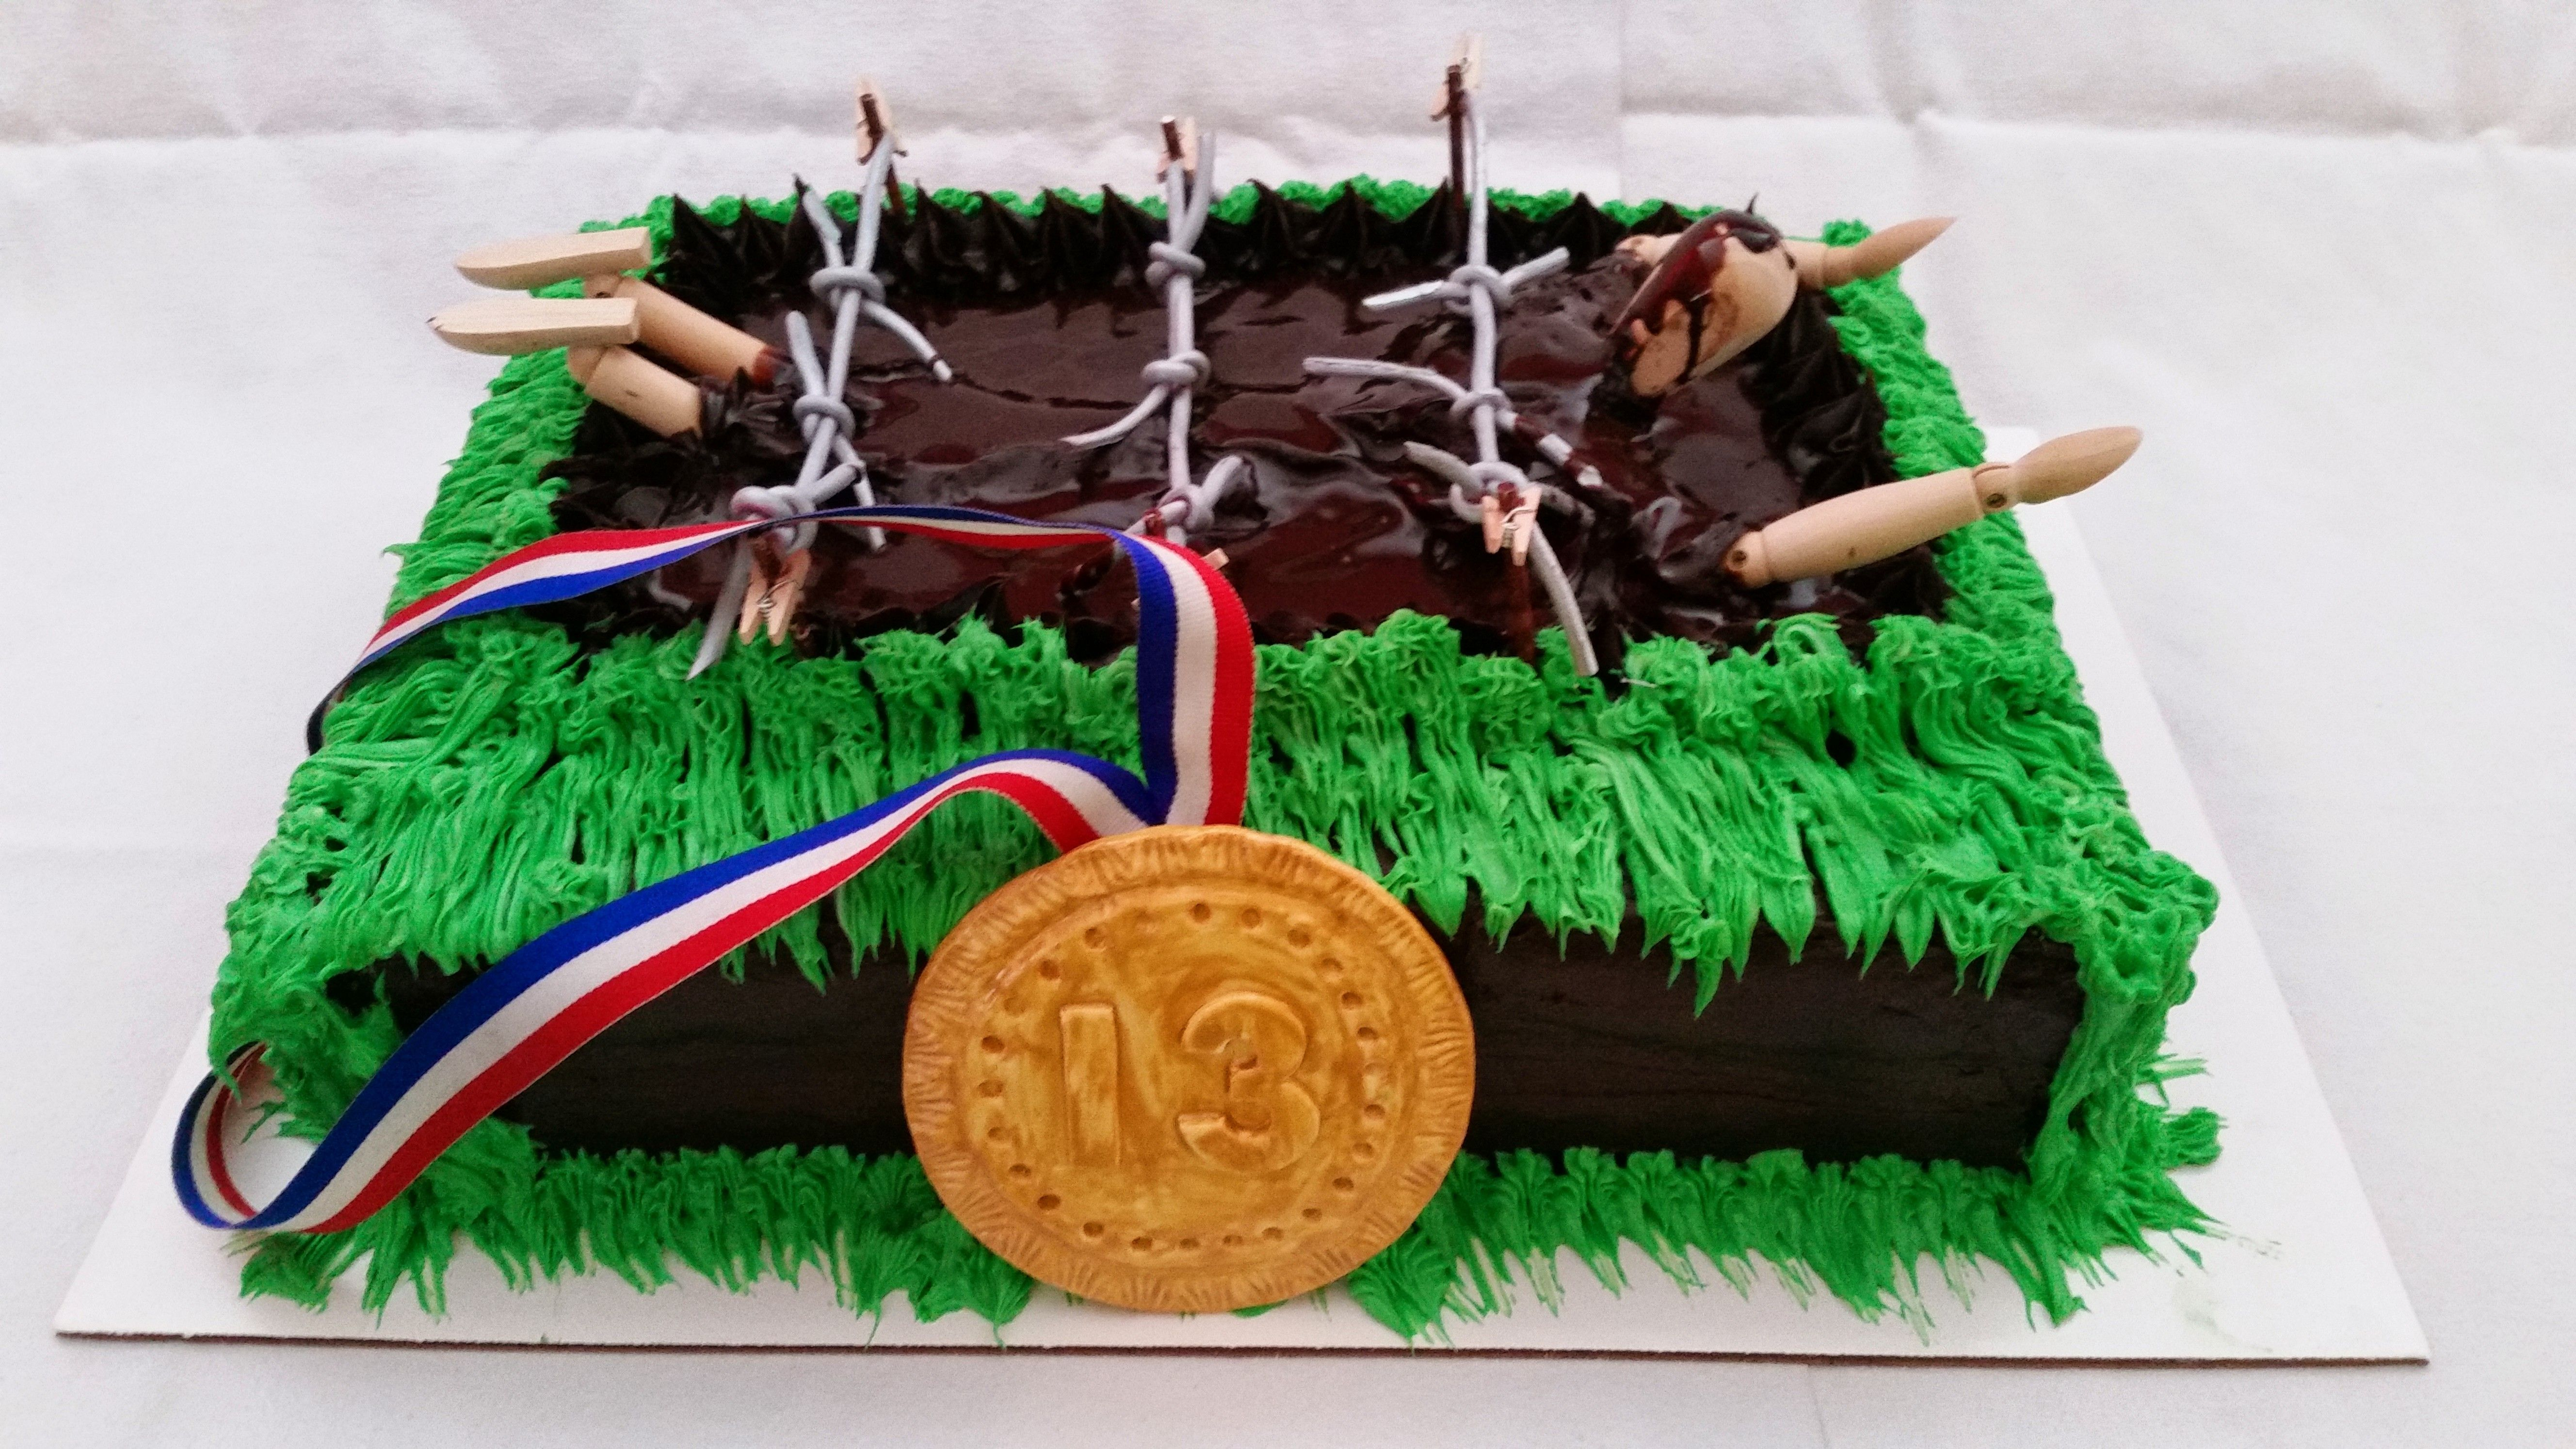 Mud Pit Obstacle Course Cake Obstacle Course Cakes Pinterest